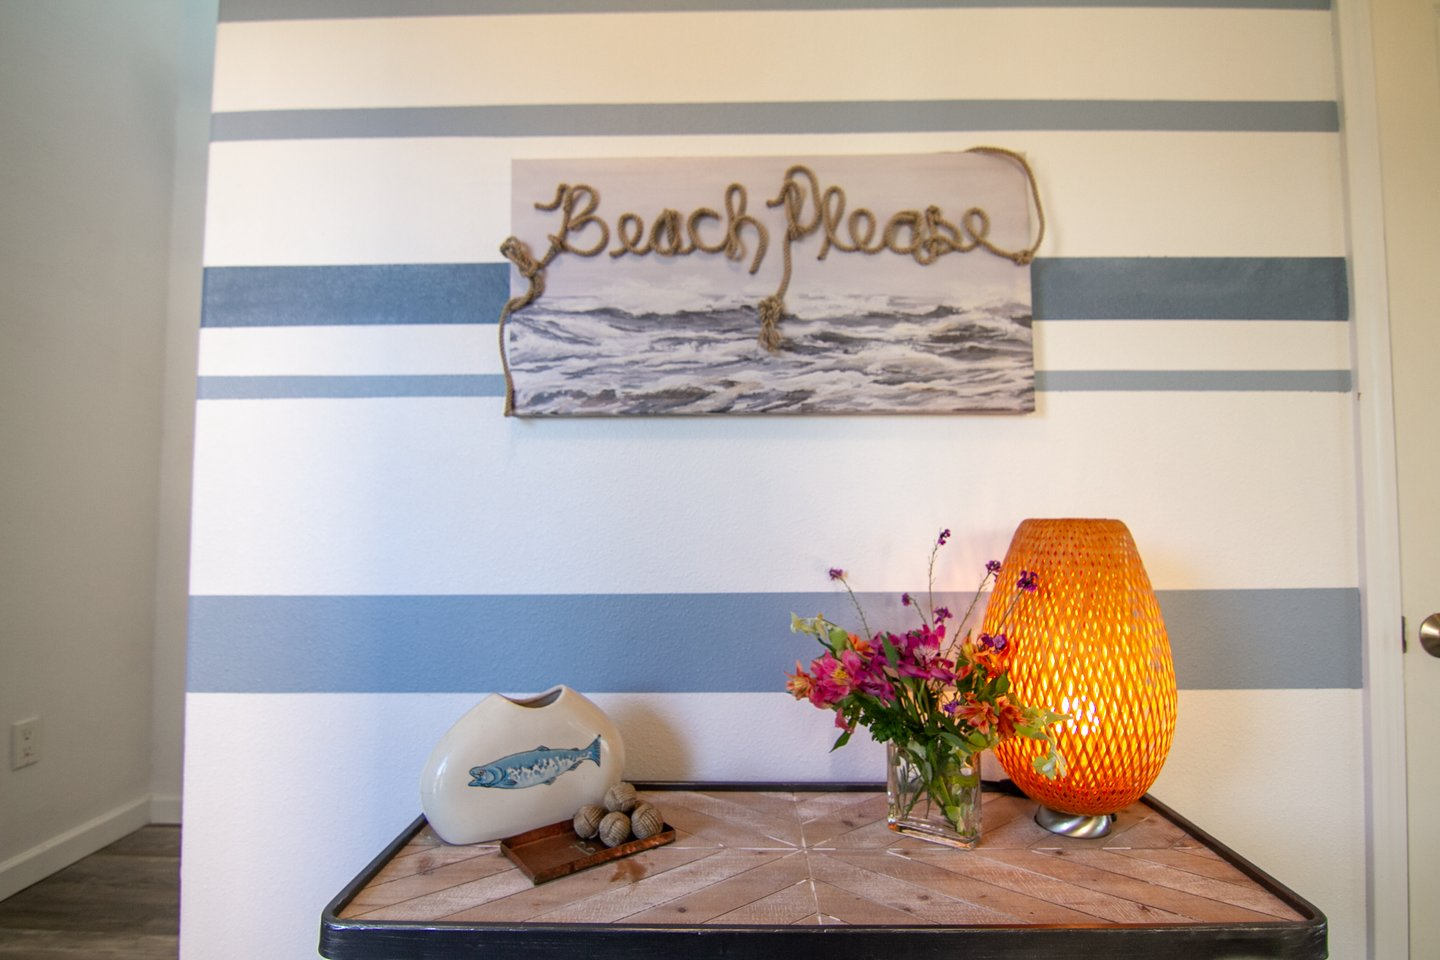 How many times can you find 'Beach, Please' in this adorable house?